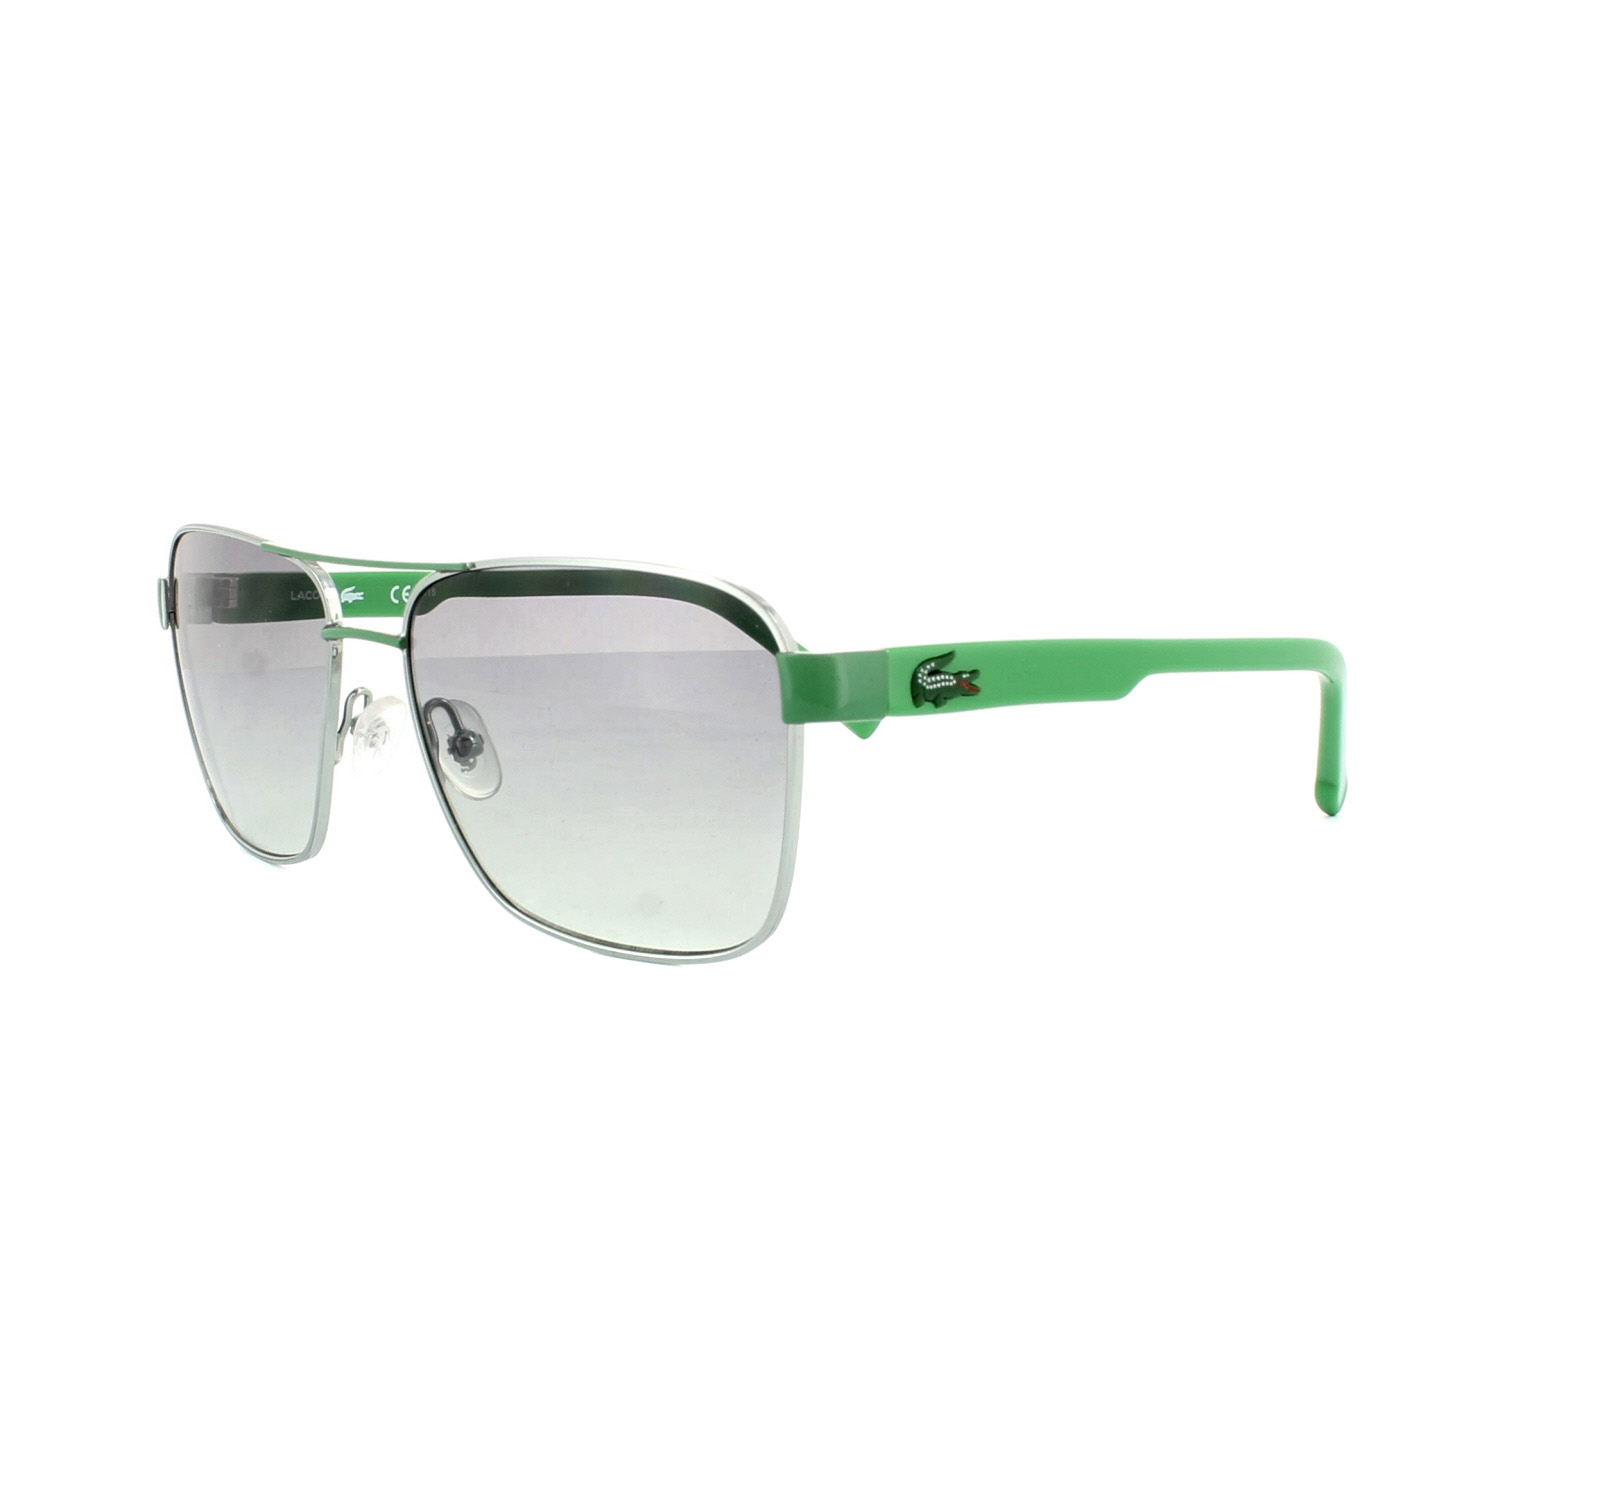 264a99cc122b Sentinel Lacoste Kids Sunglasses L3105S 315 Light Green Green Grey Gradient